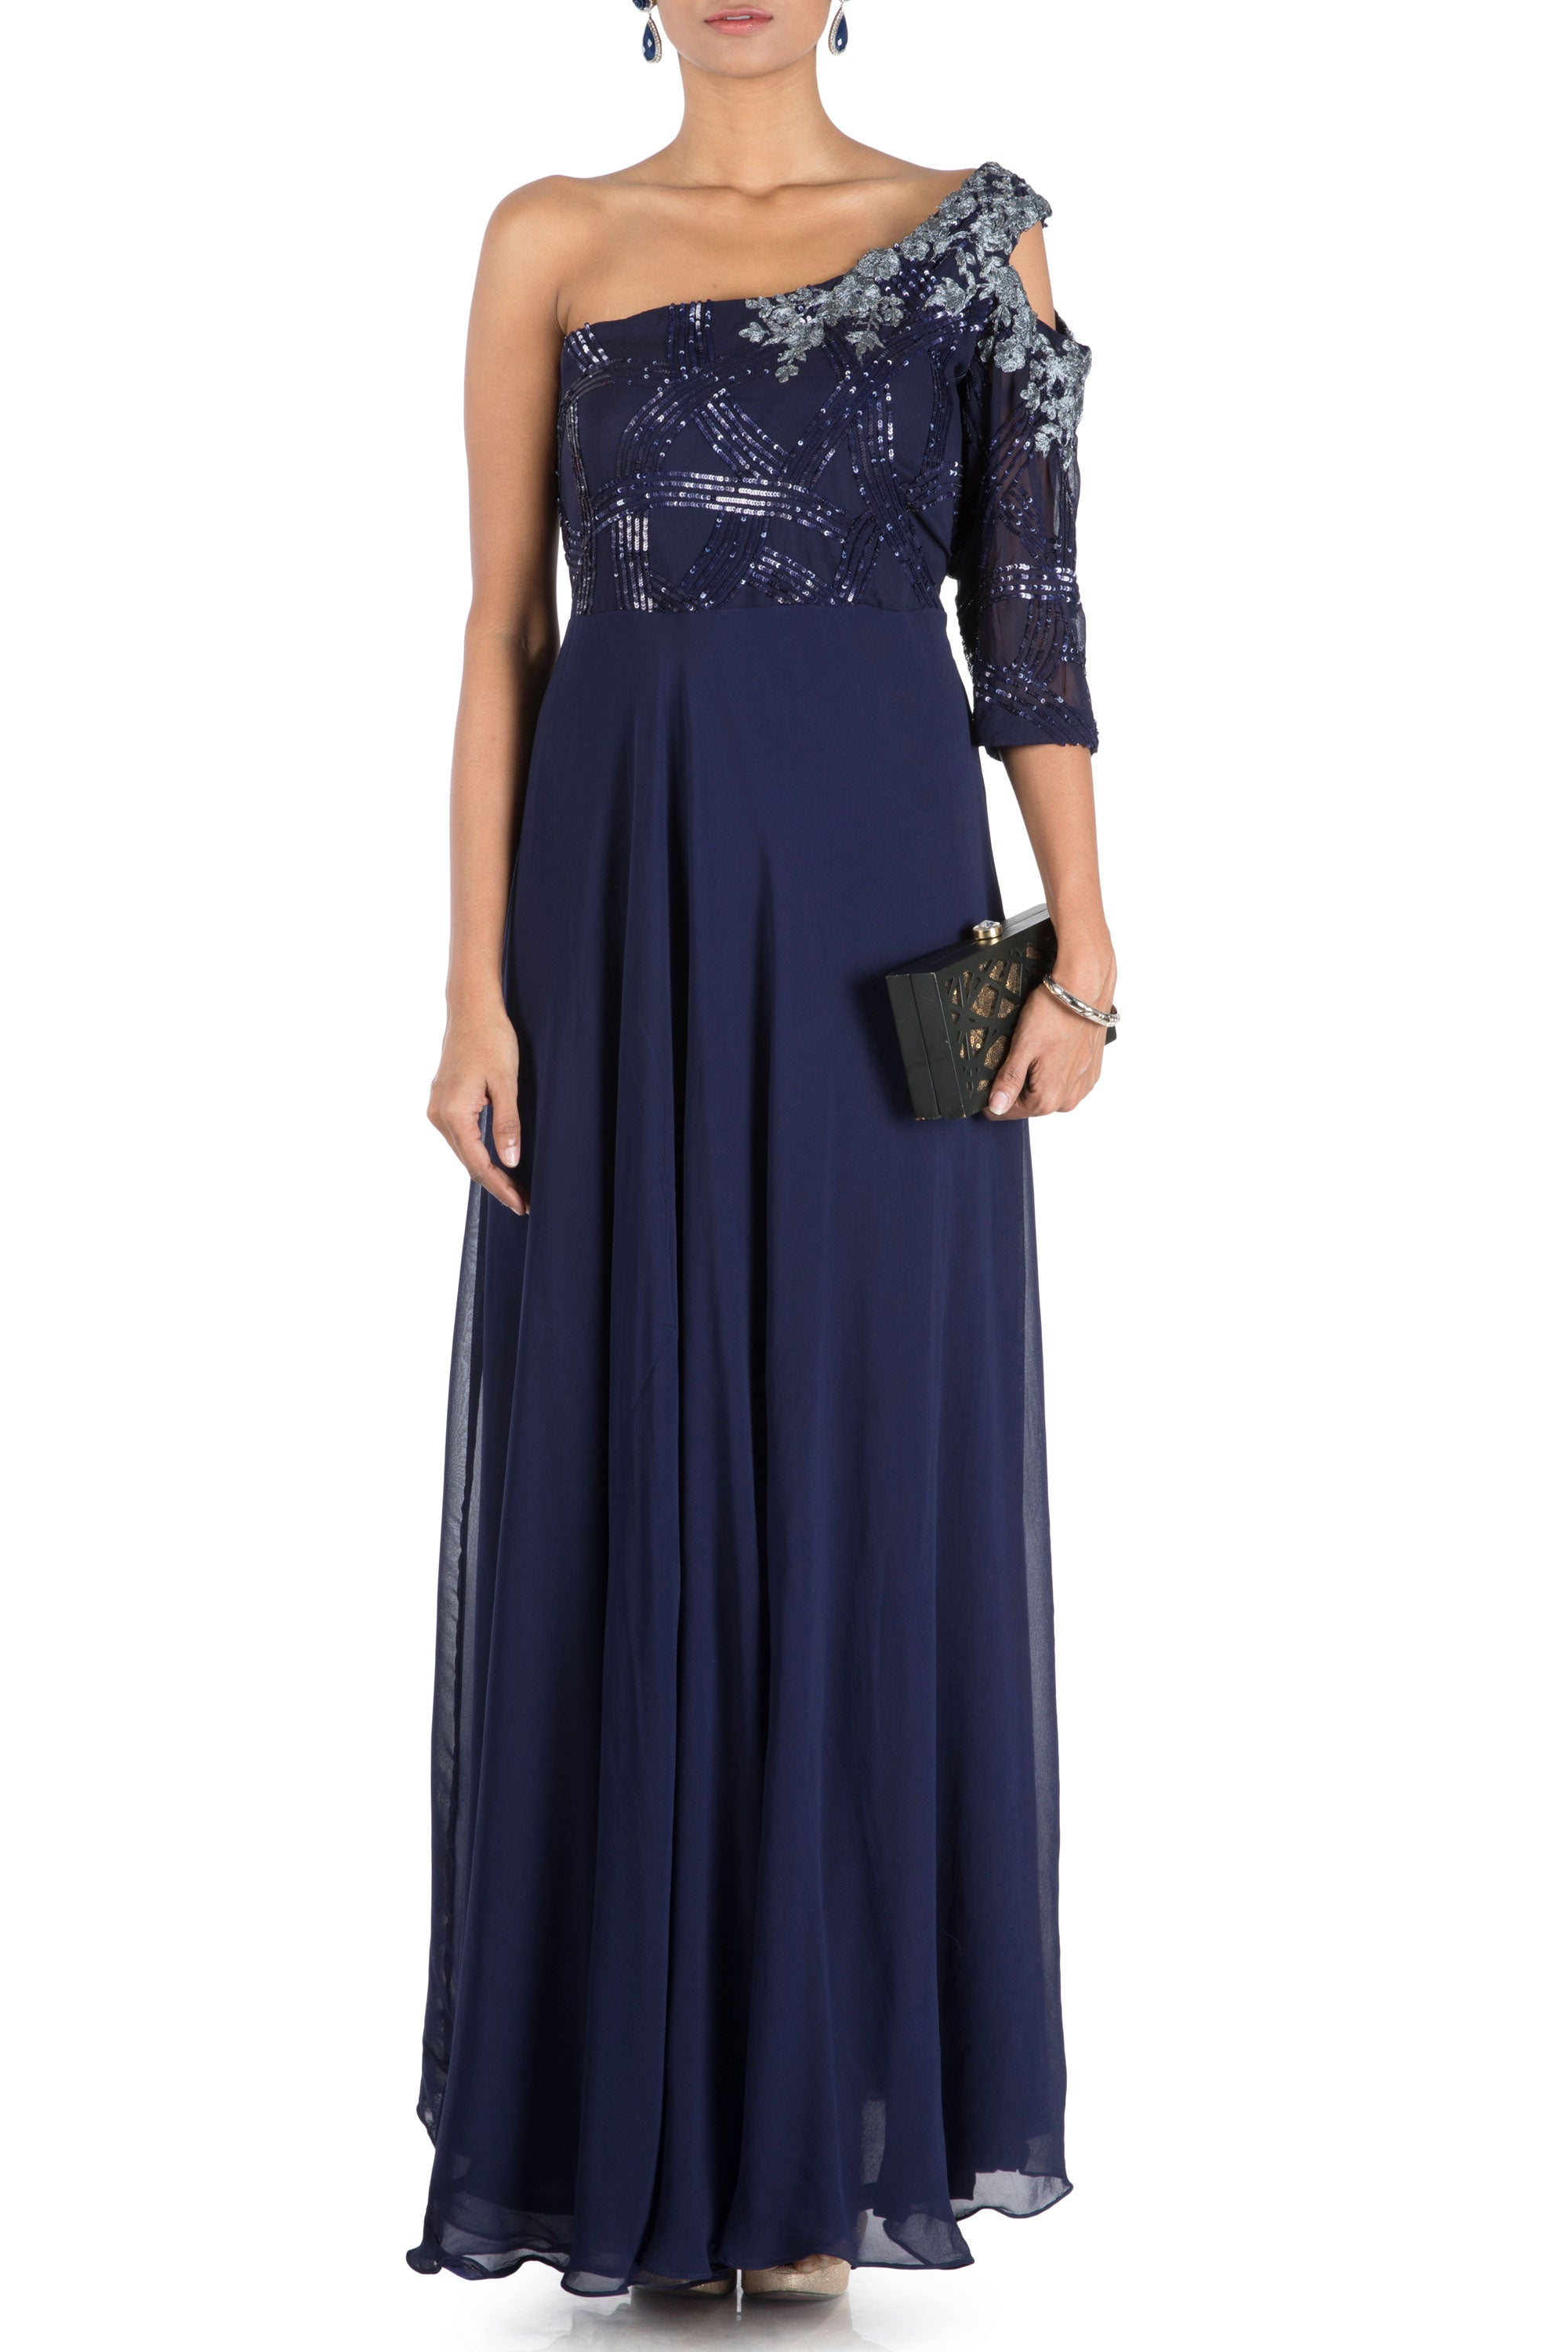 Midnight Blue Off Shoulder Flare Gown With One Side Cold Shoulder Viva Luxe